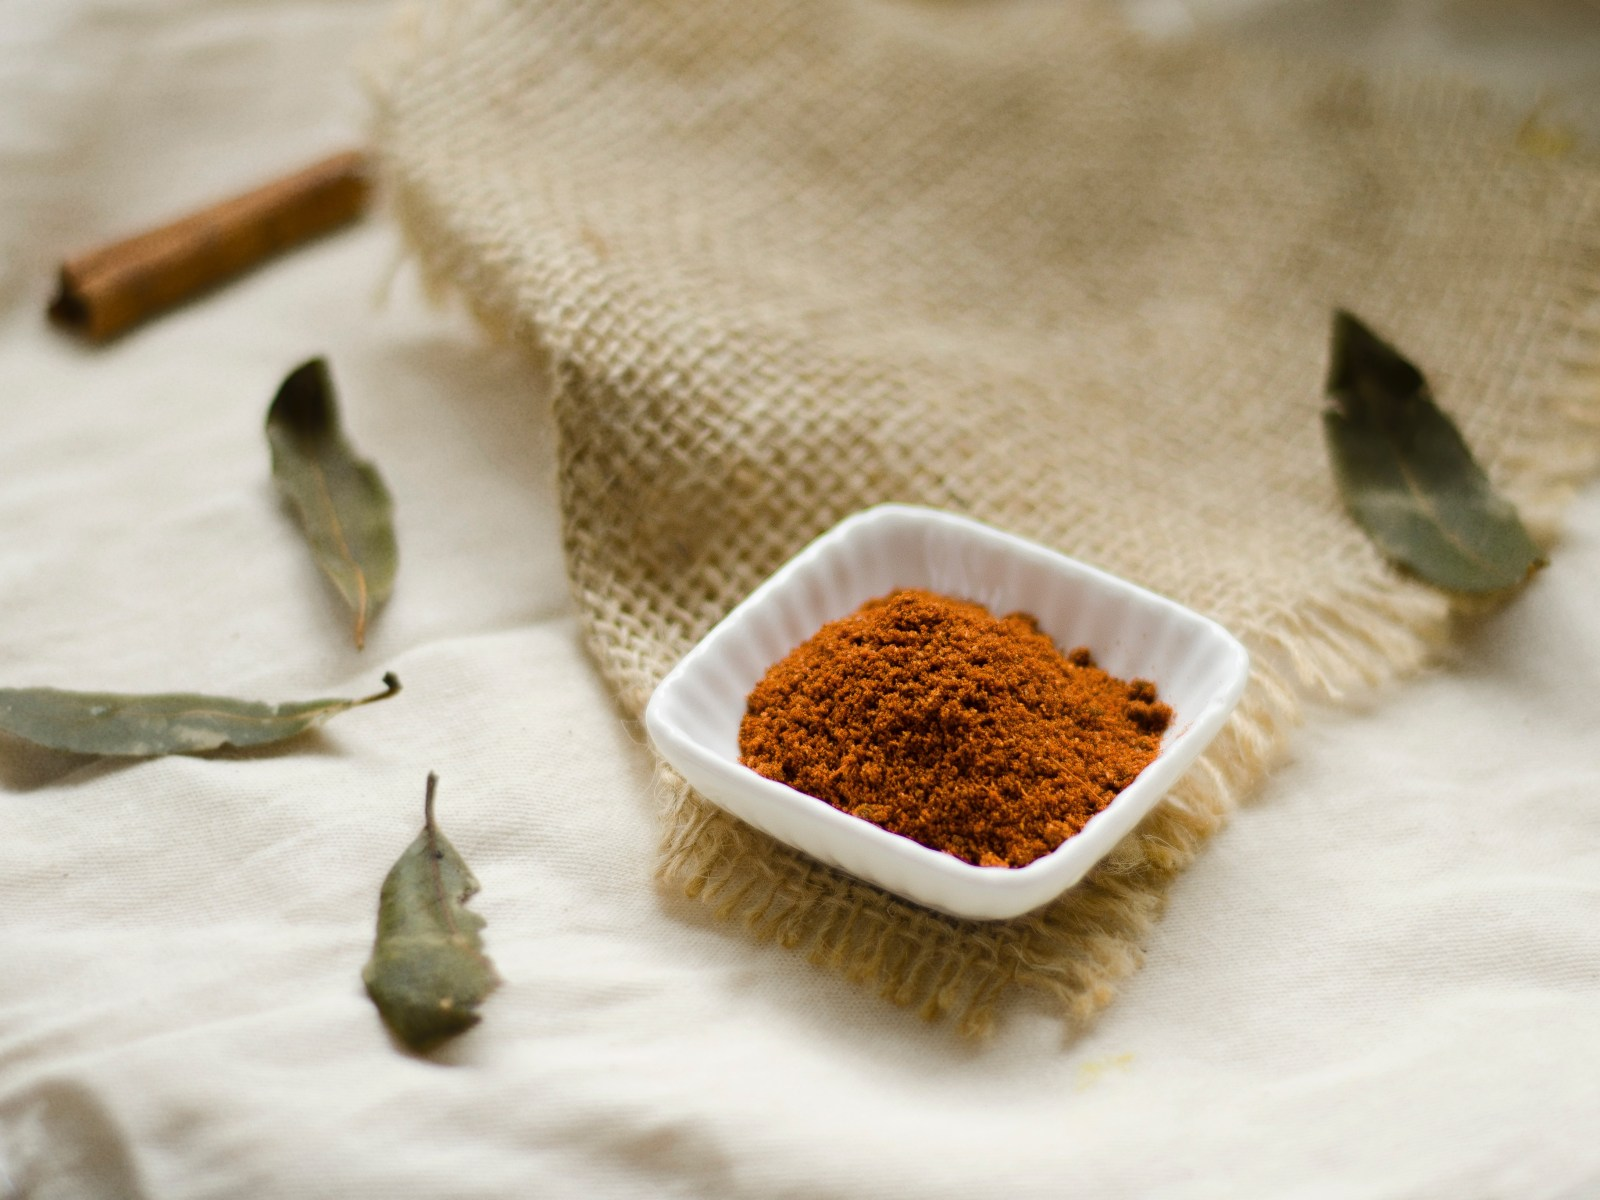 How To Make Your Own Pumpkin Spice This Fall